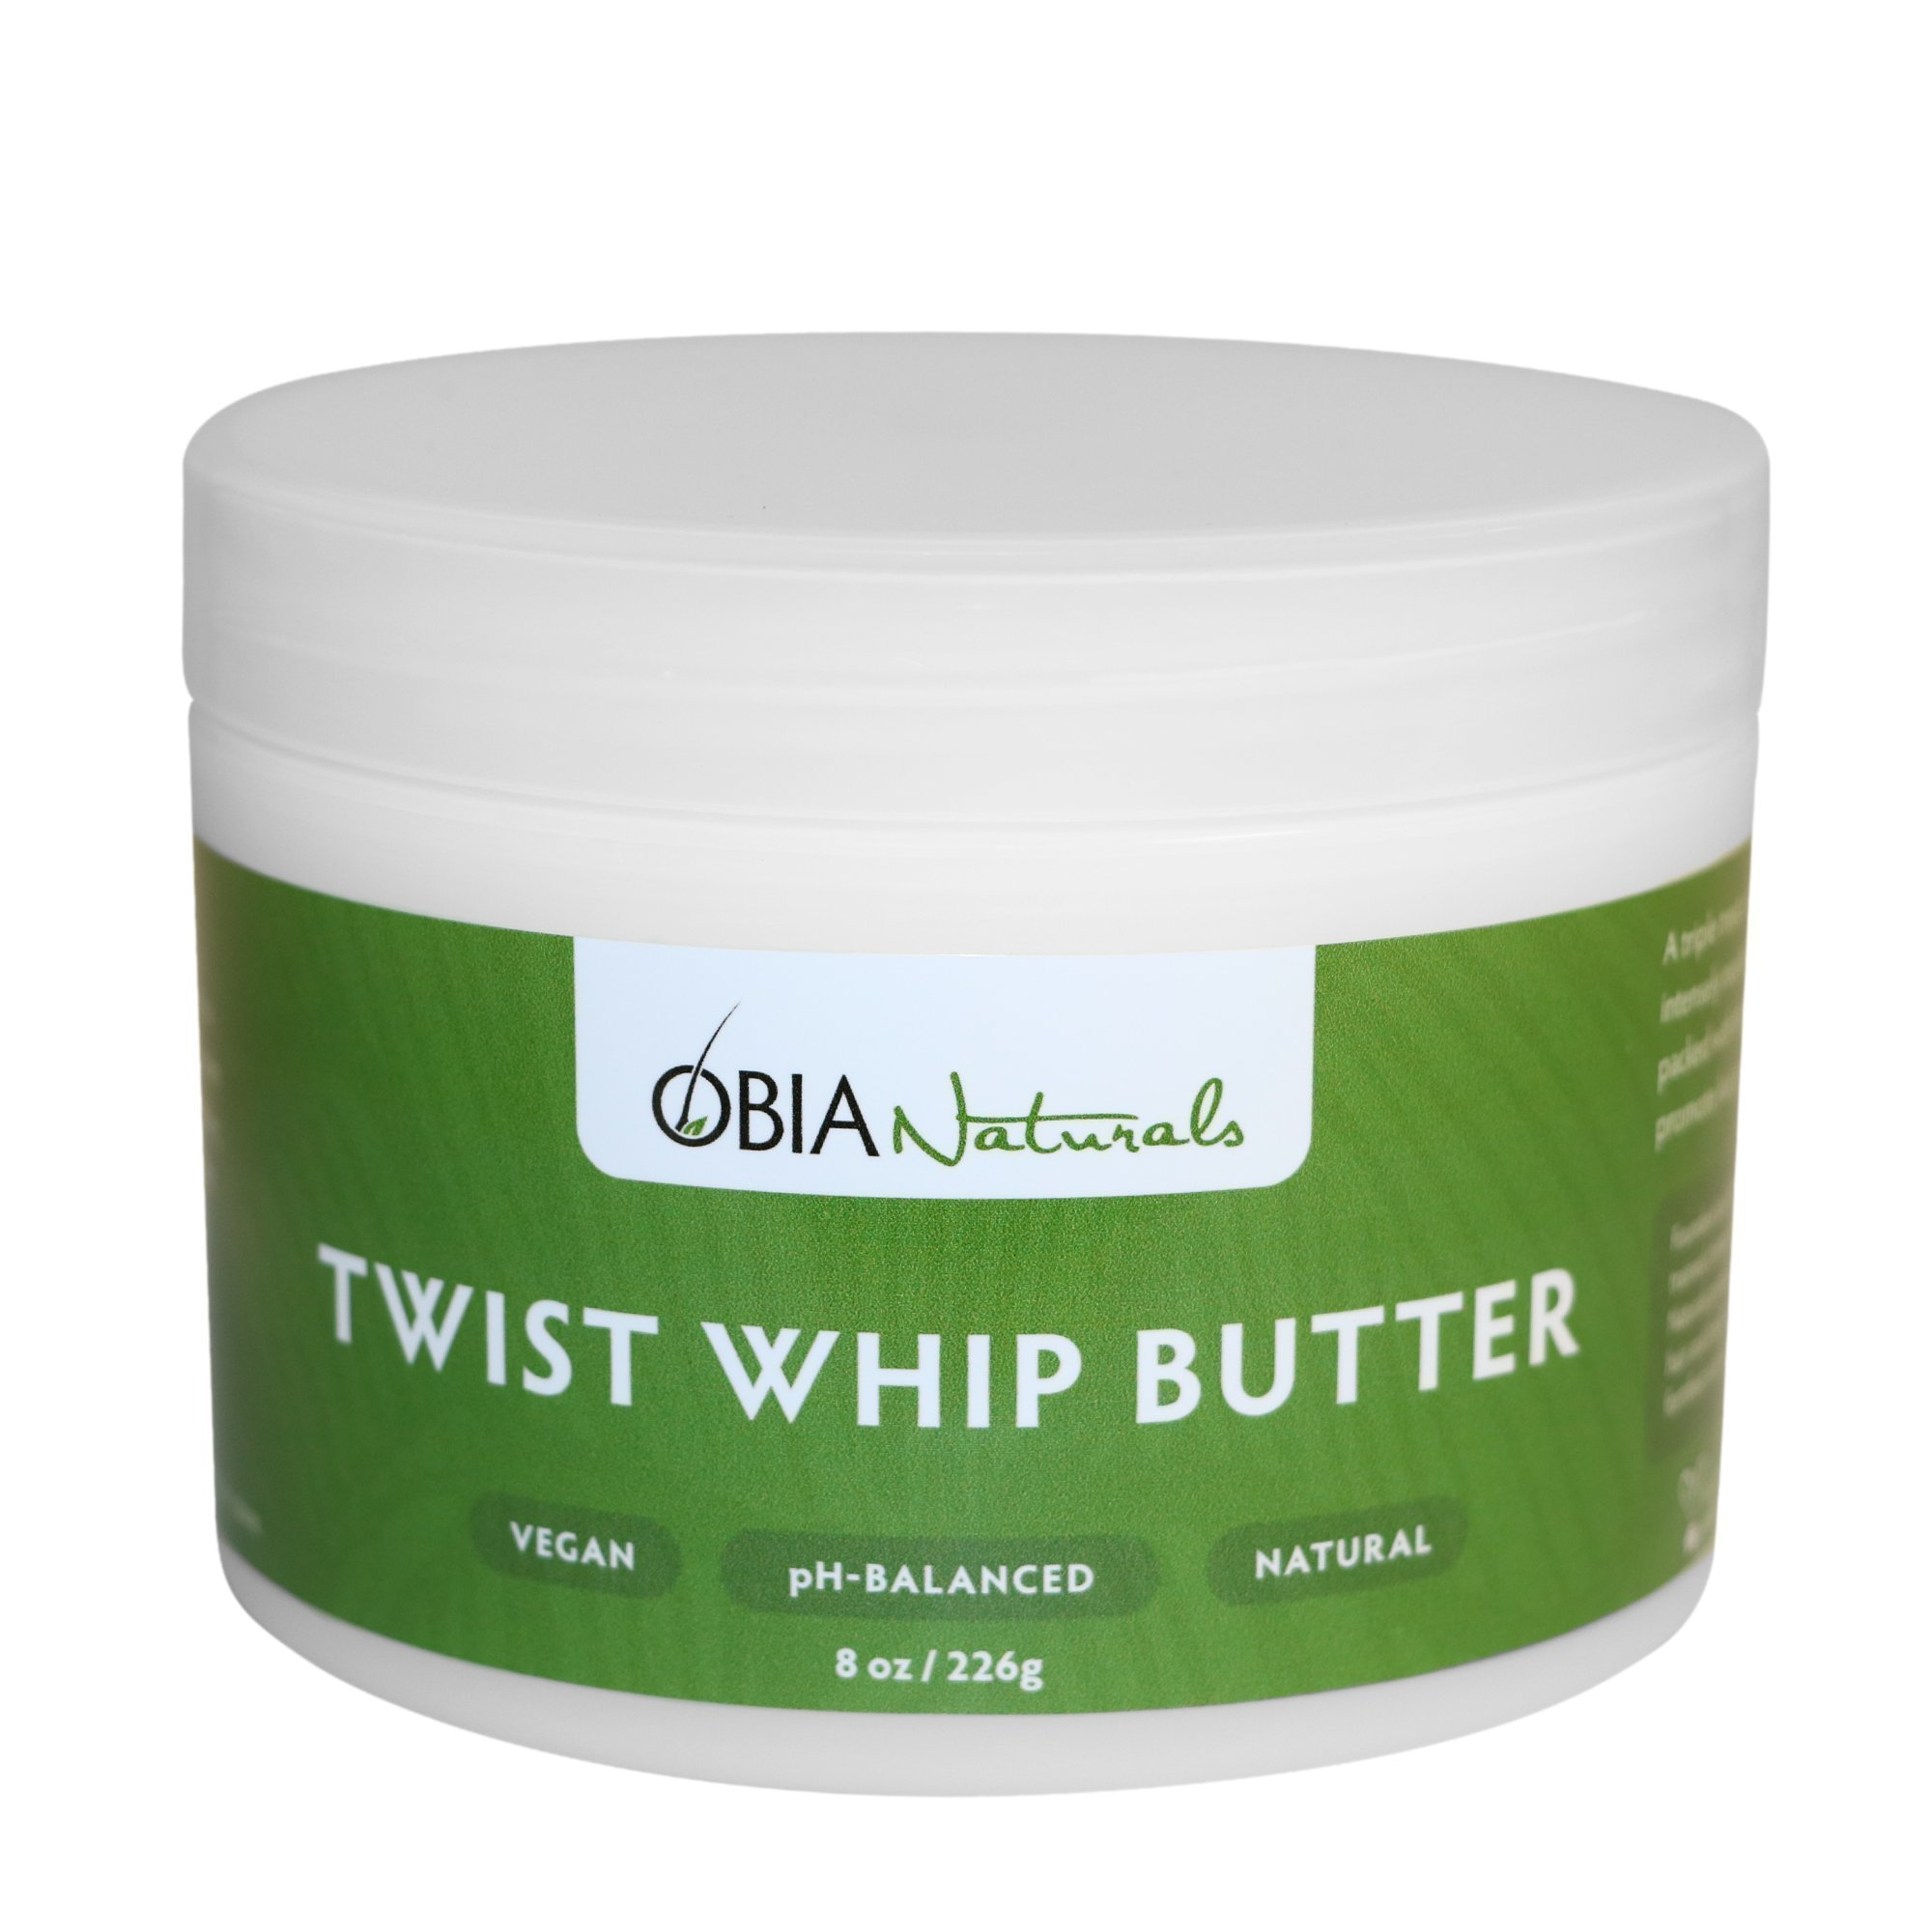 OBIA Naturals Twist Whip Butter, 8 oz.